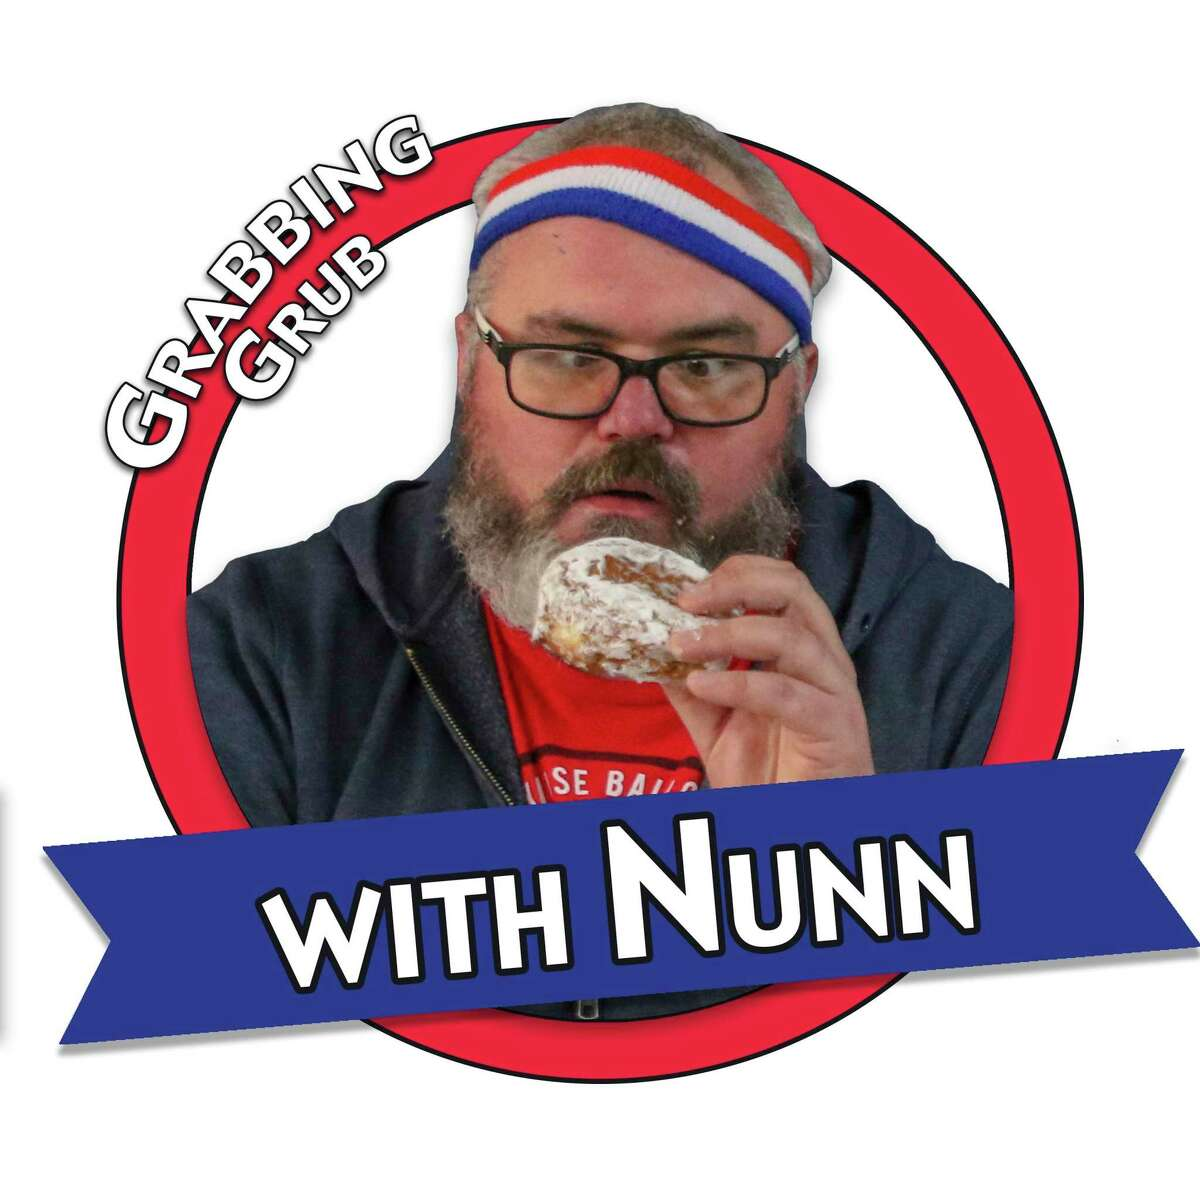 Grabbing Grub with Nunn drops every other Saturday. (Huron Daily Tribune)